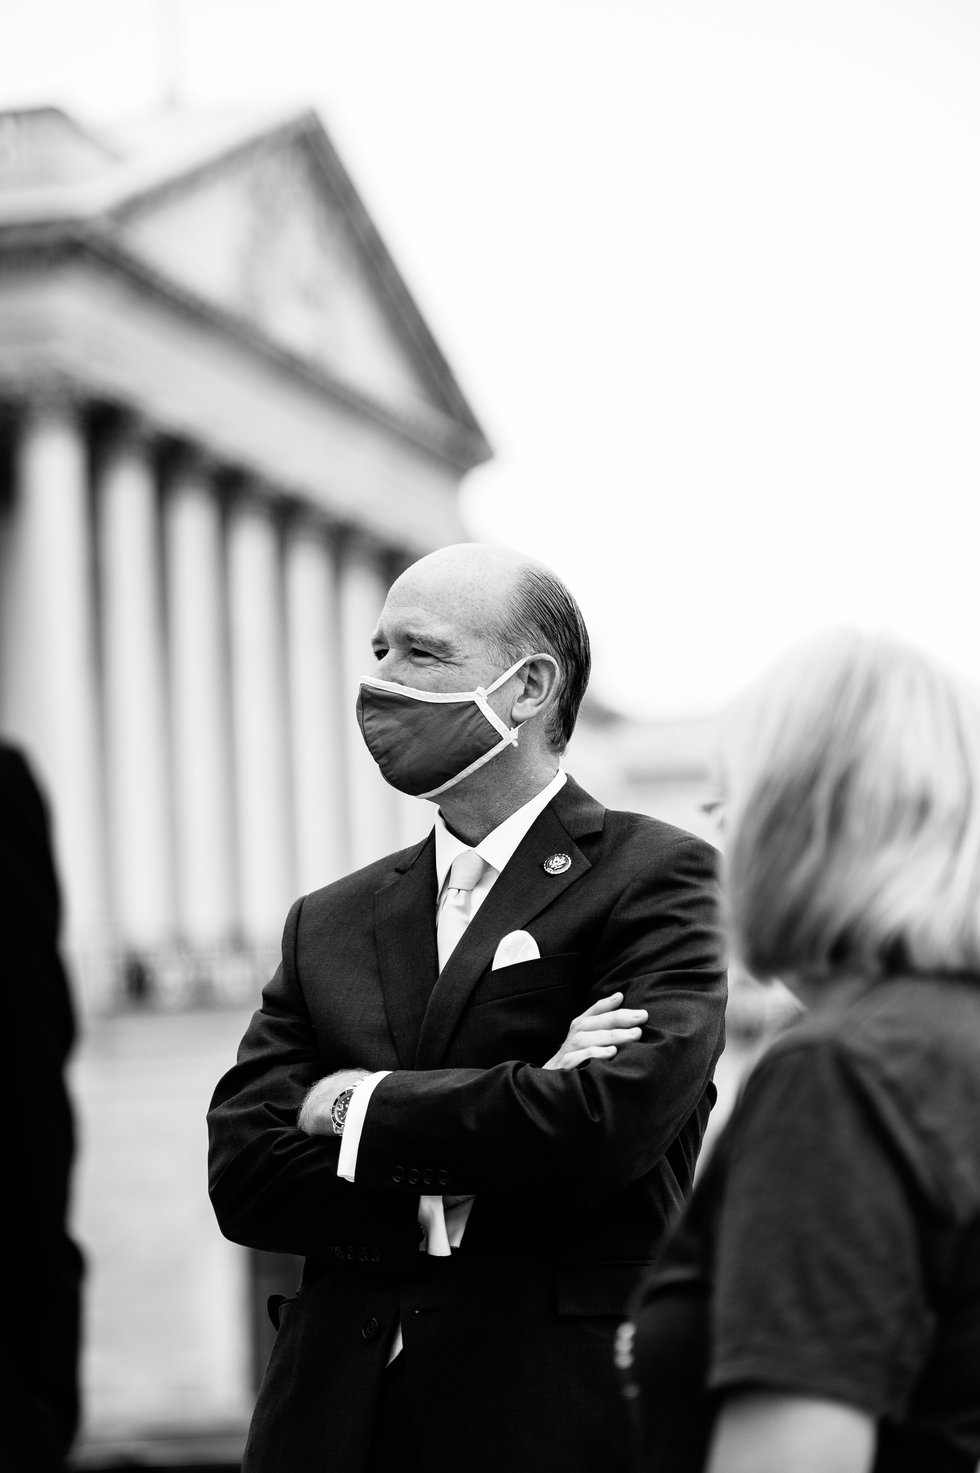 Homtex Cullman awarded contract to make masks for U.S. Capitol